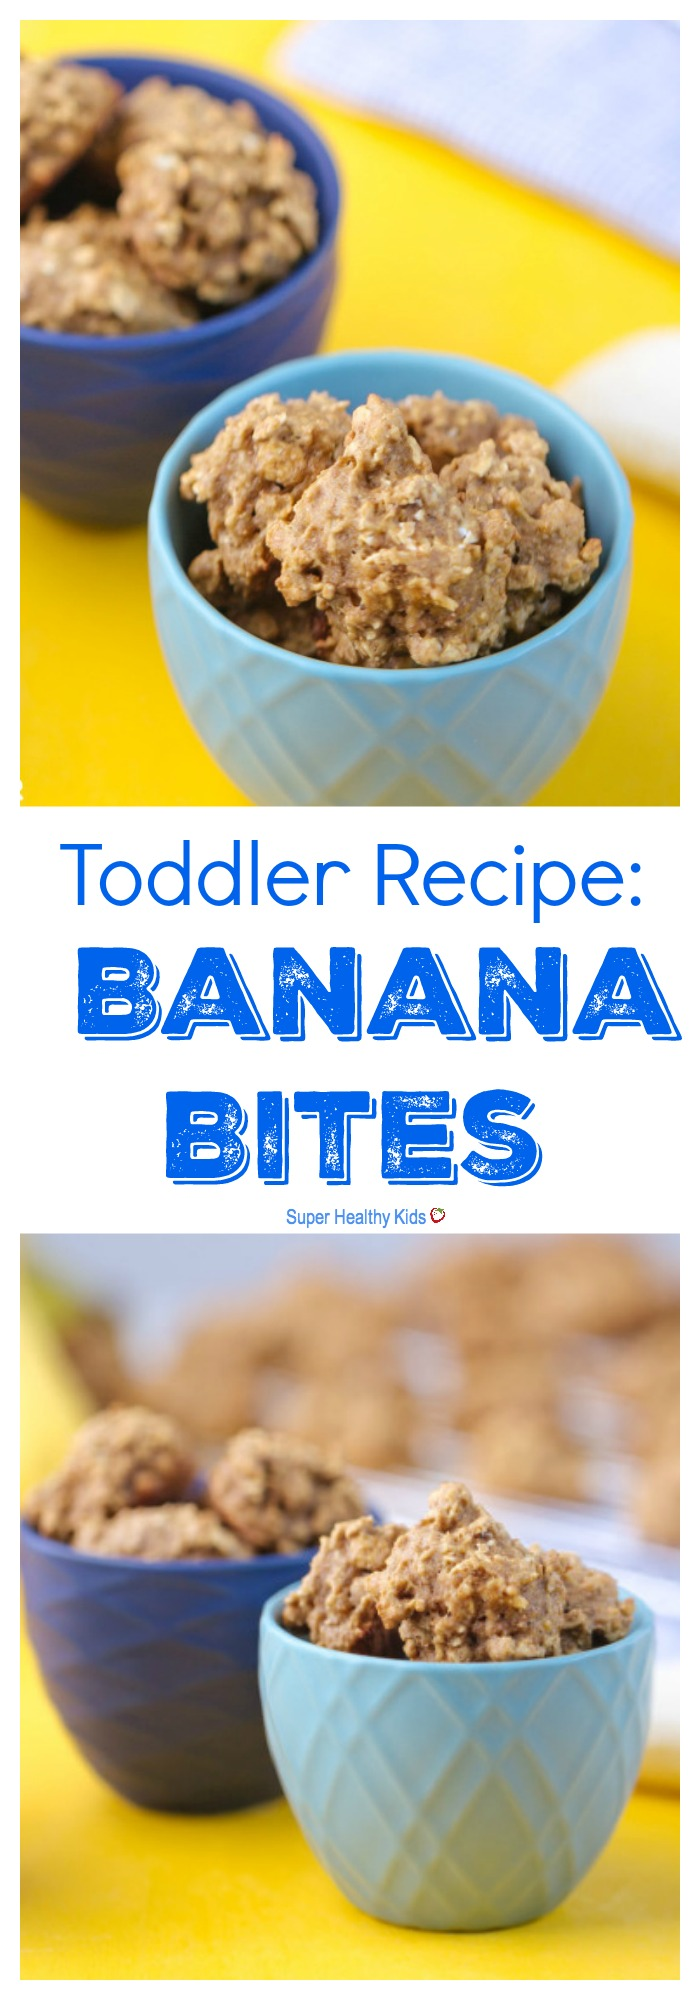 Toddler recipe banana bites healthy ideas for kids food toddler recipe banana bites healthy finger food for toddlers https forumfinder Choice Image